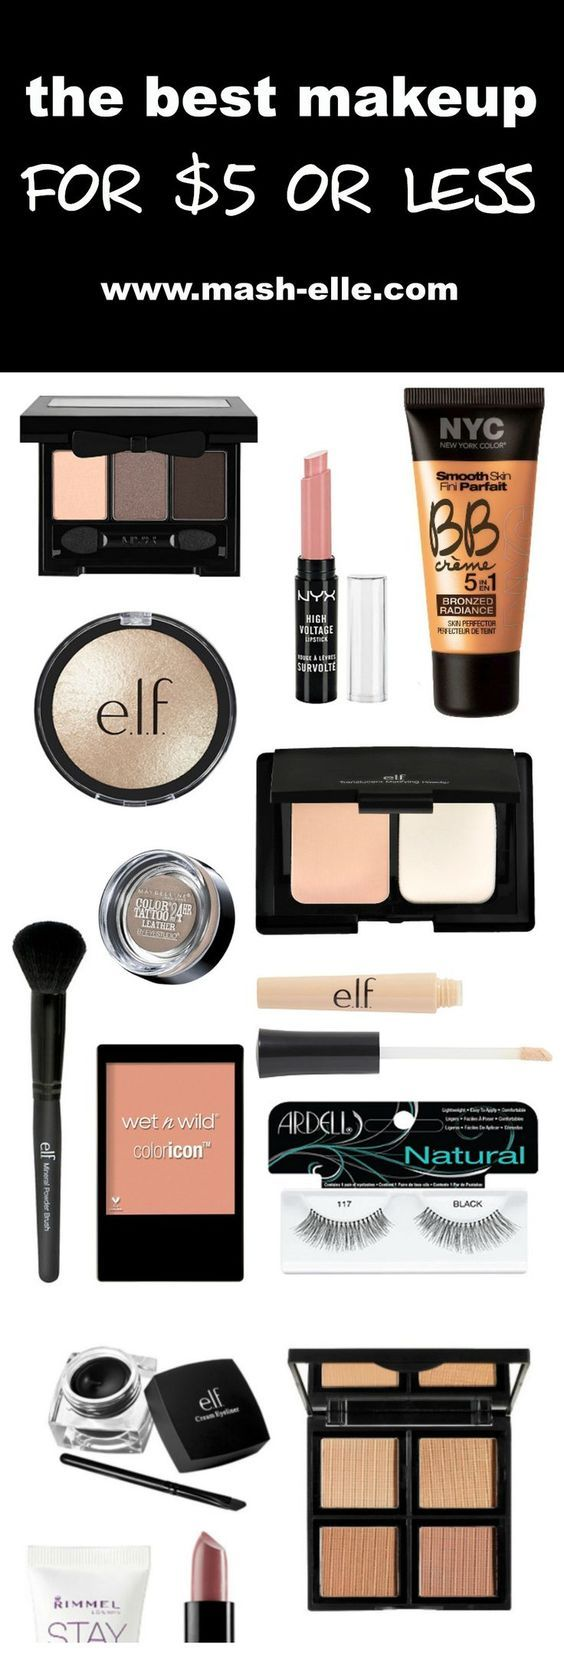 The ultimate roundup of makeup under $5! Featuring brands such as e.l.f, NYC, Maybelline, Milani, NYX, NYC, Wet N Wild and so many more! Beauty blogger Mash Elle gives a roundup of 40+ affordable makeup products all $5 or less! Perfect for beginners, these makeup products will be the perfect gifts for the ones you love!